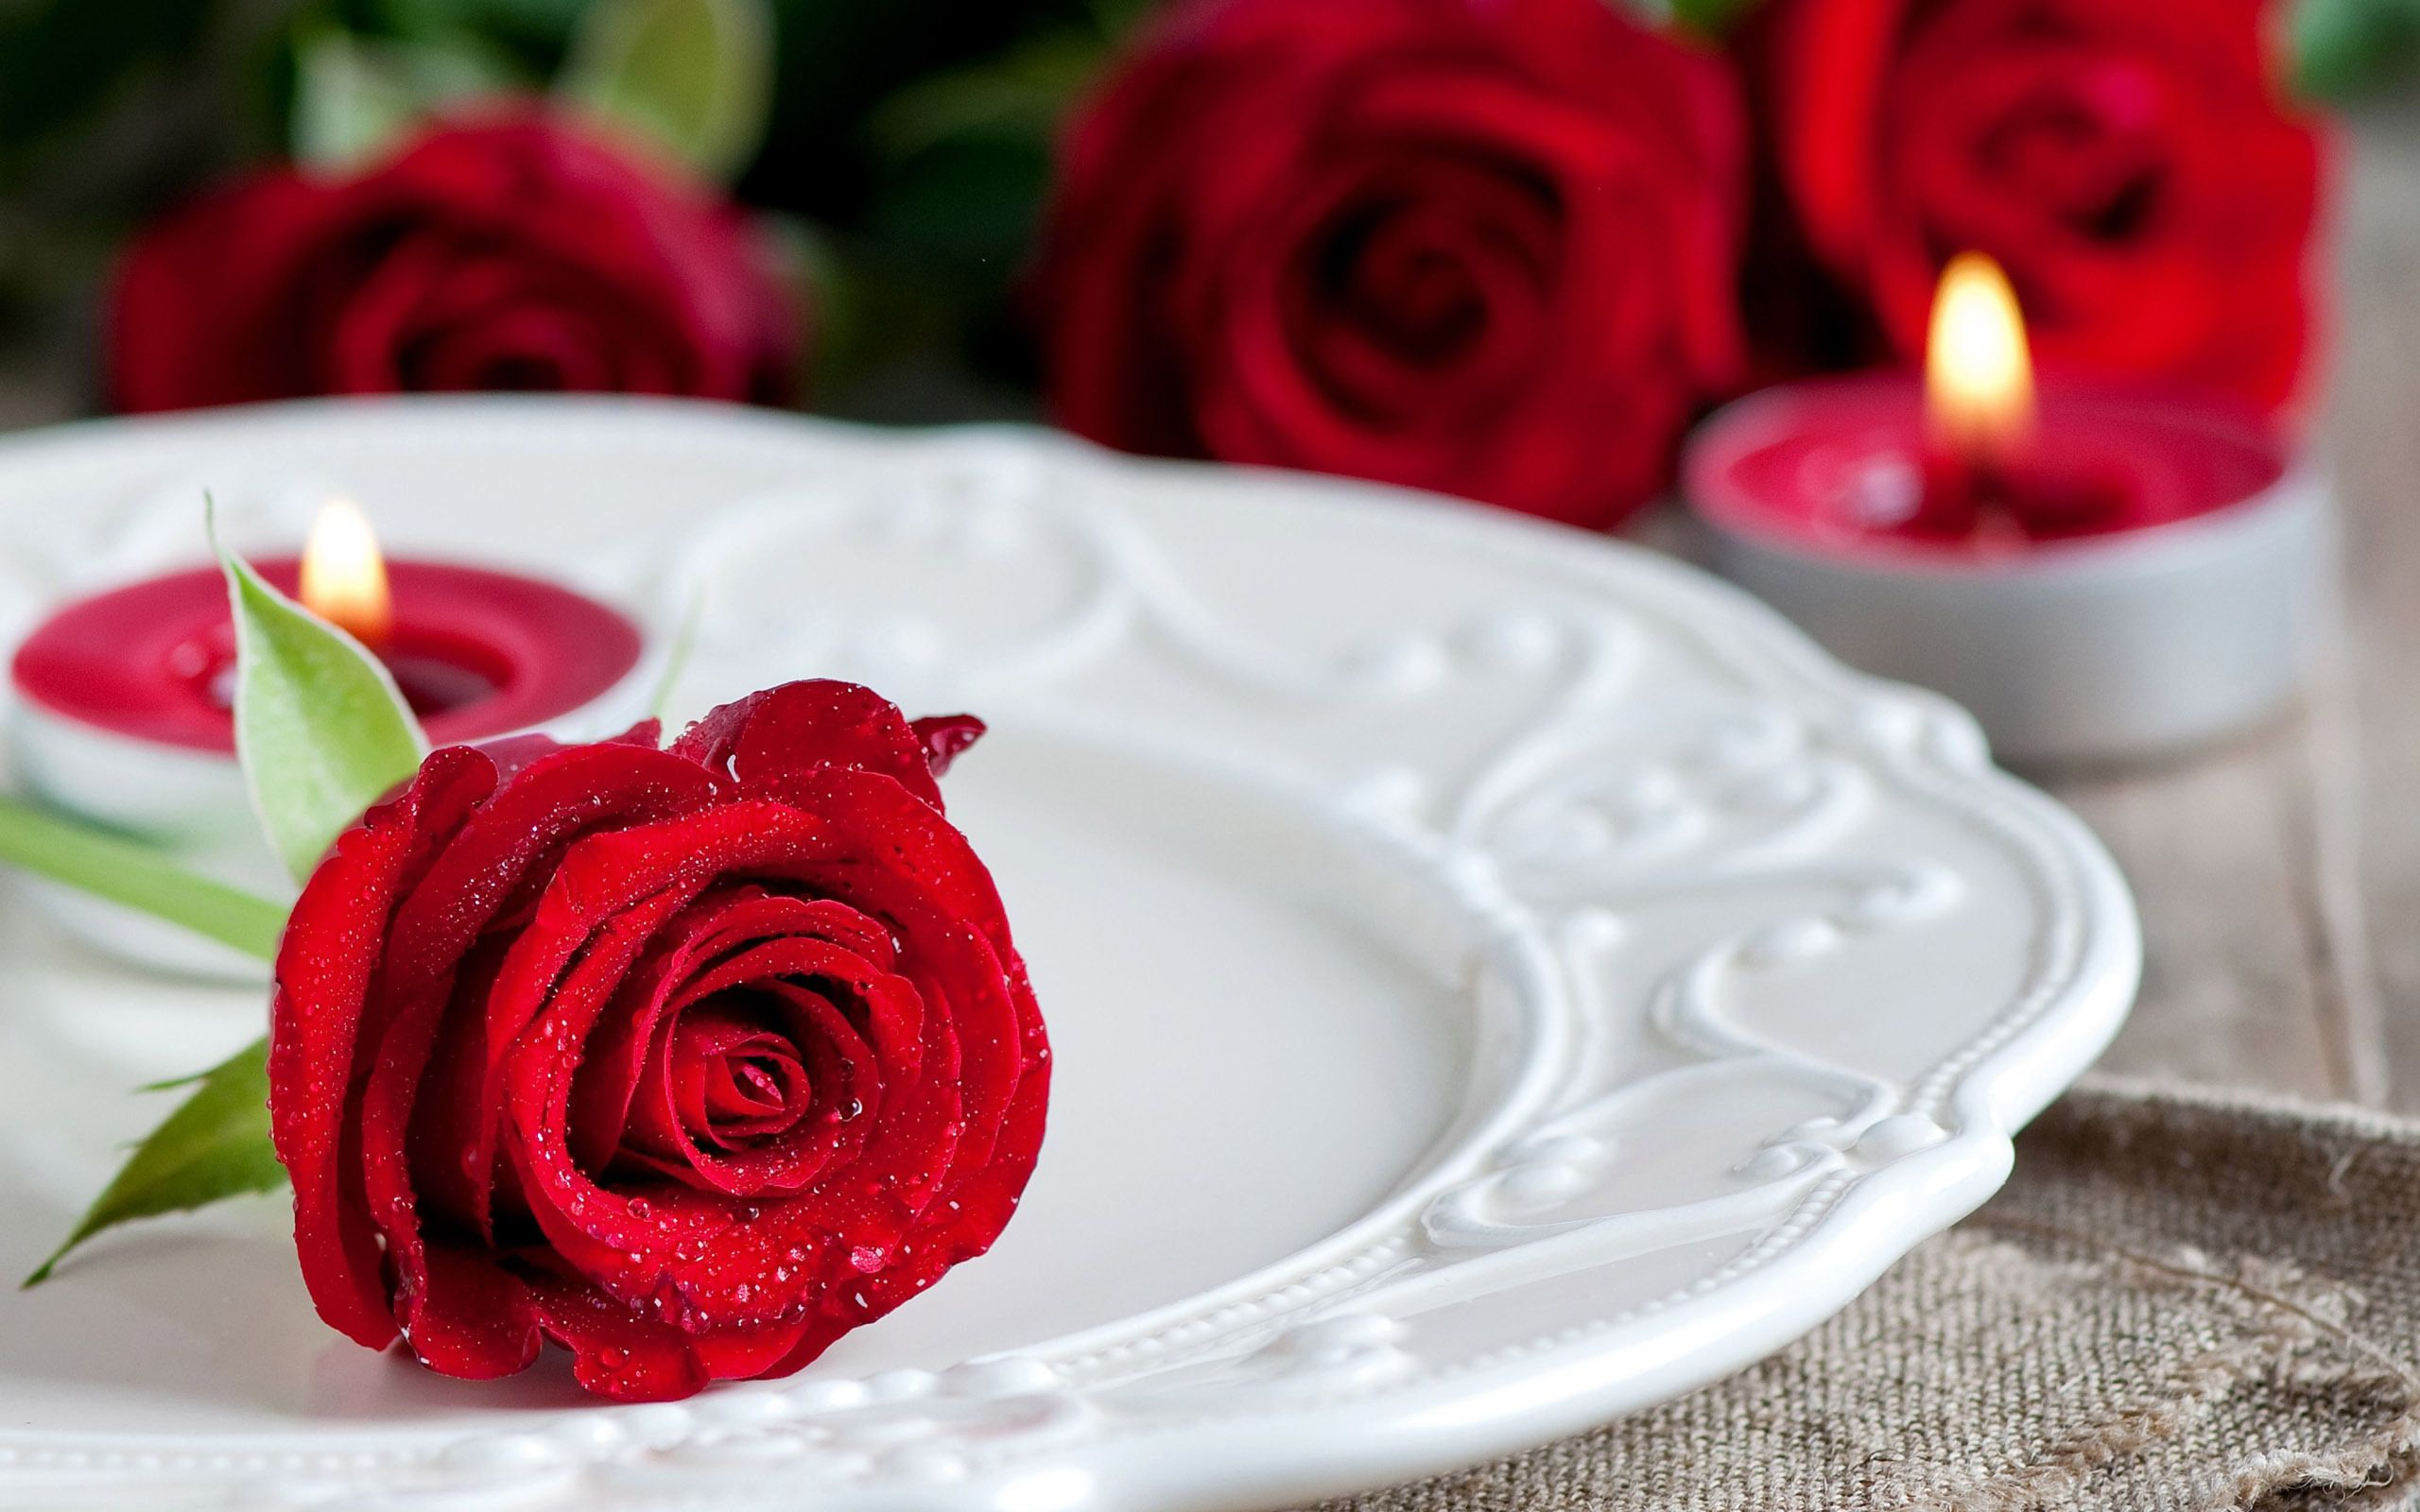 Hd wallpaper red rose - Red Rose On A Plate Flower Hd Wallpaper X